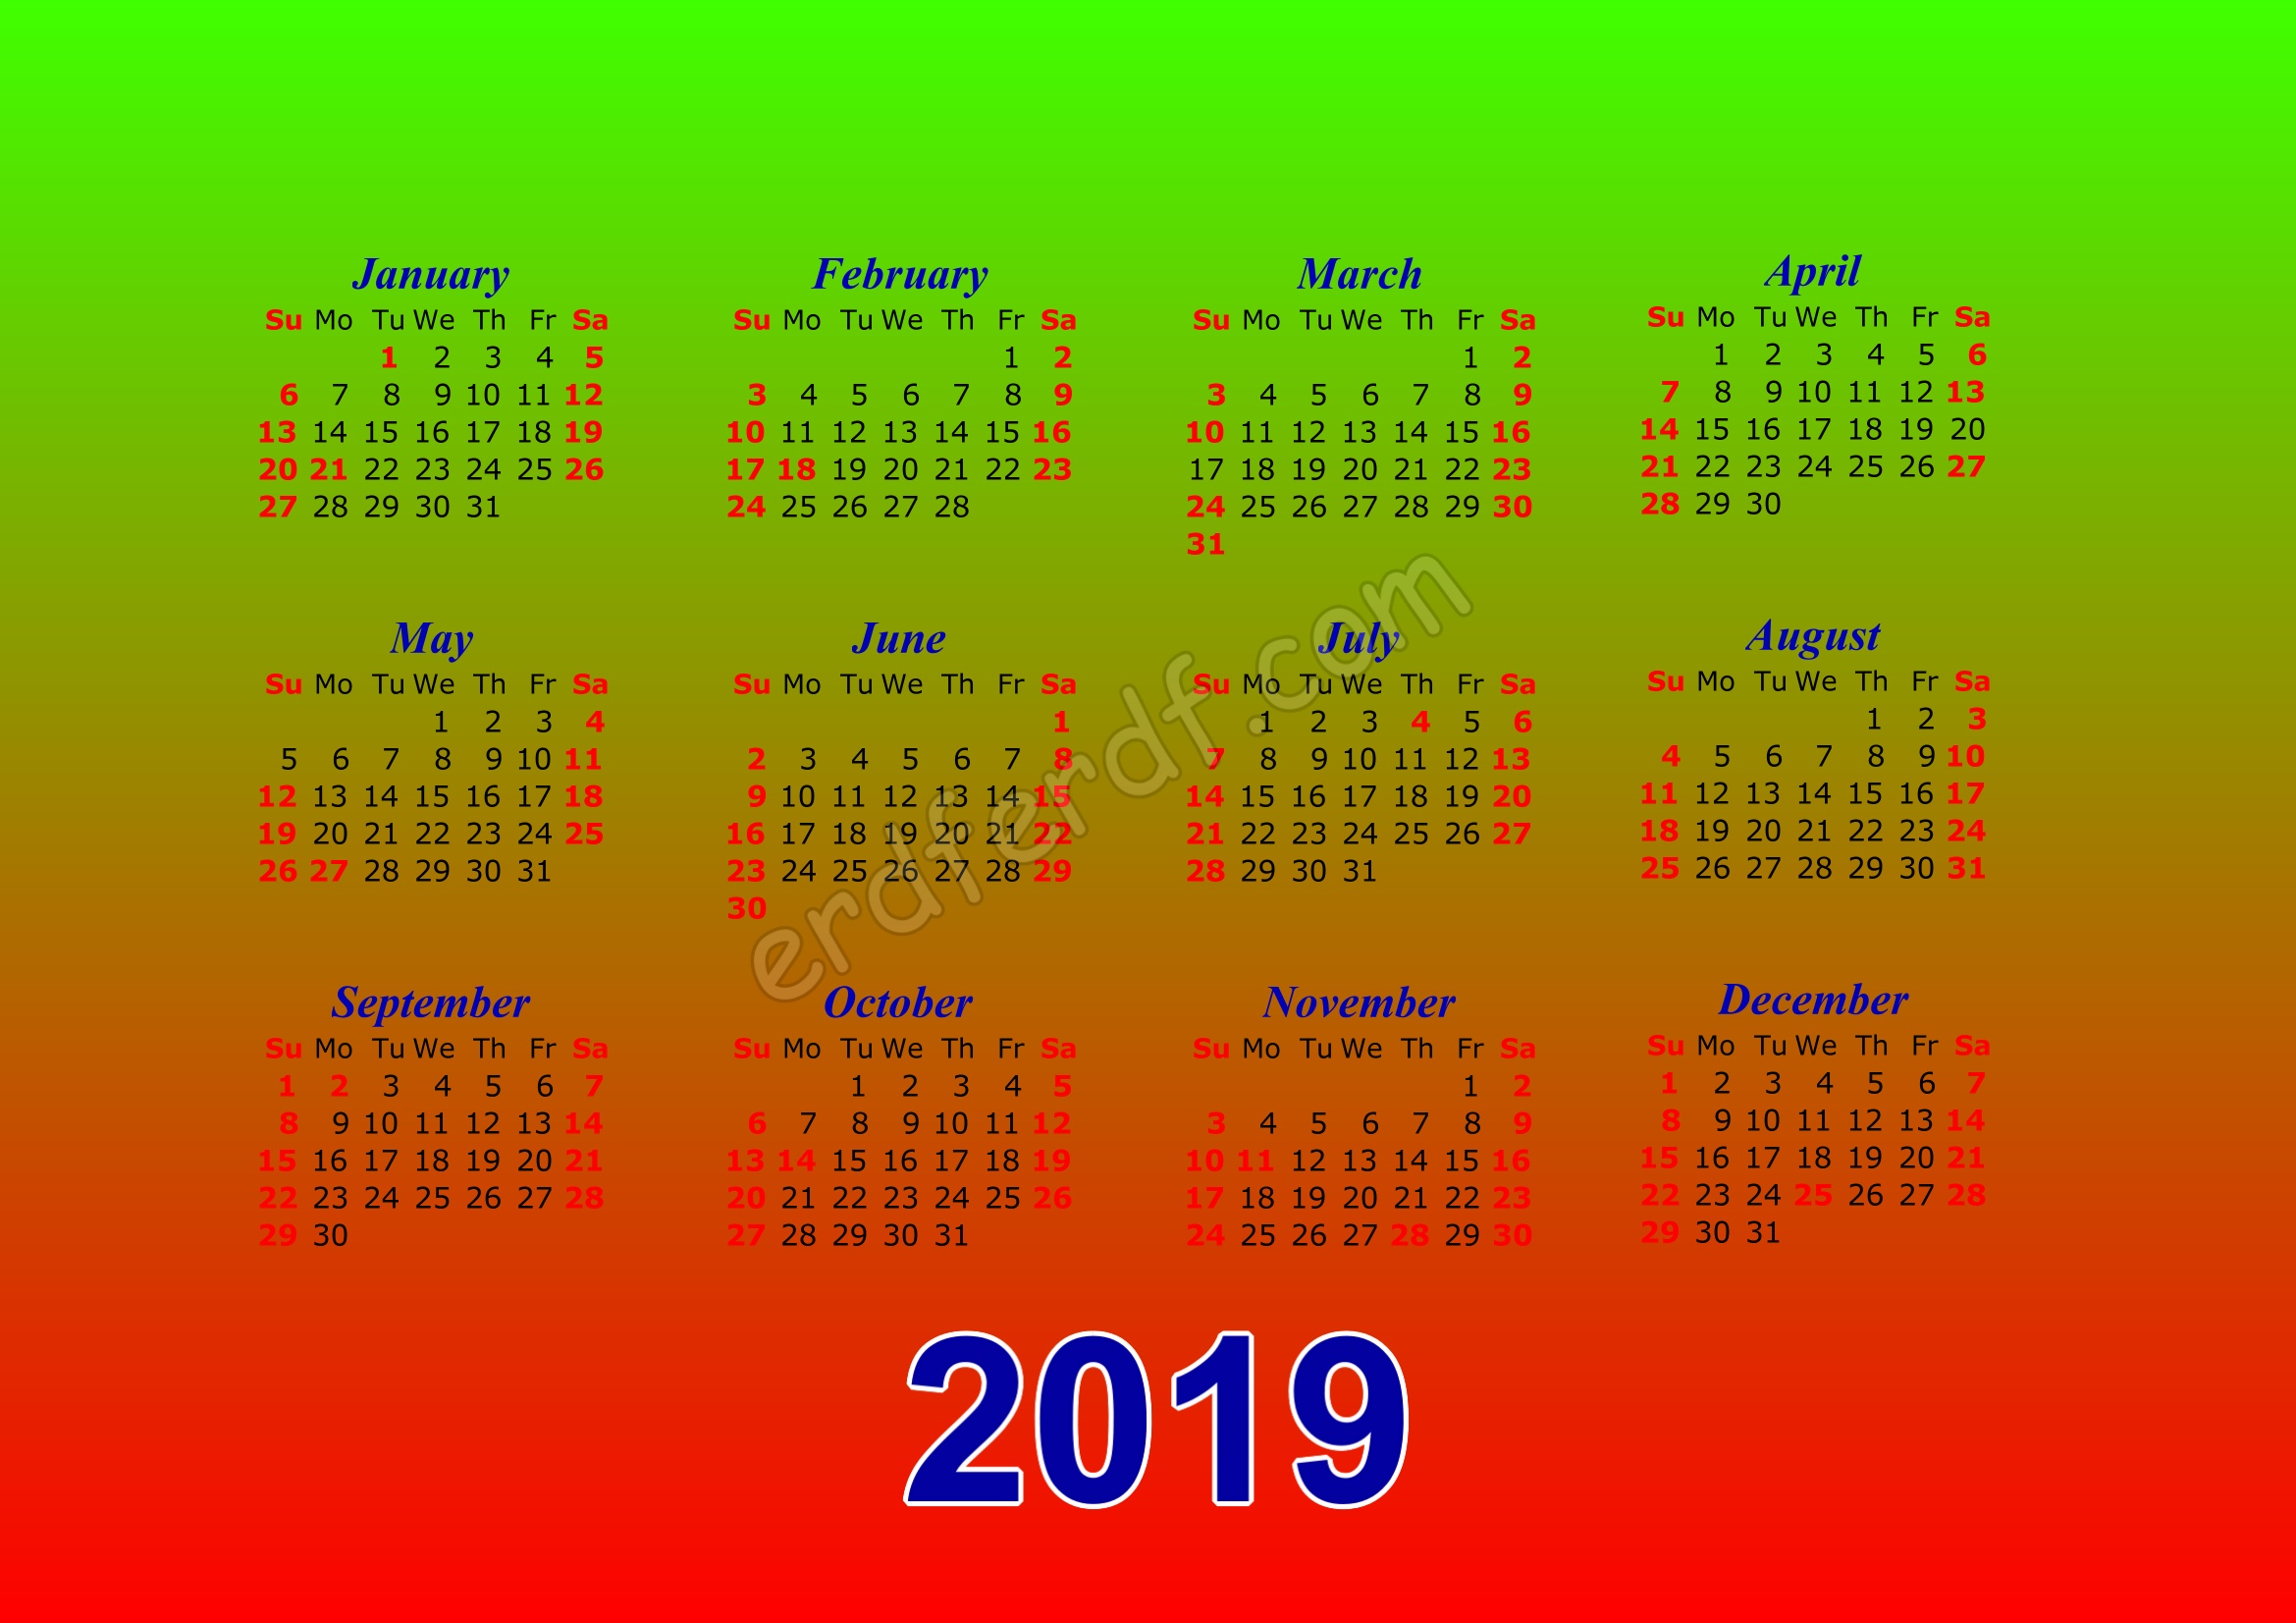 Calendar Template 2019 Illustrator